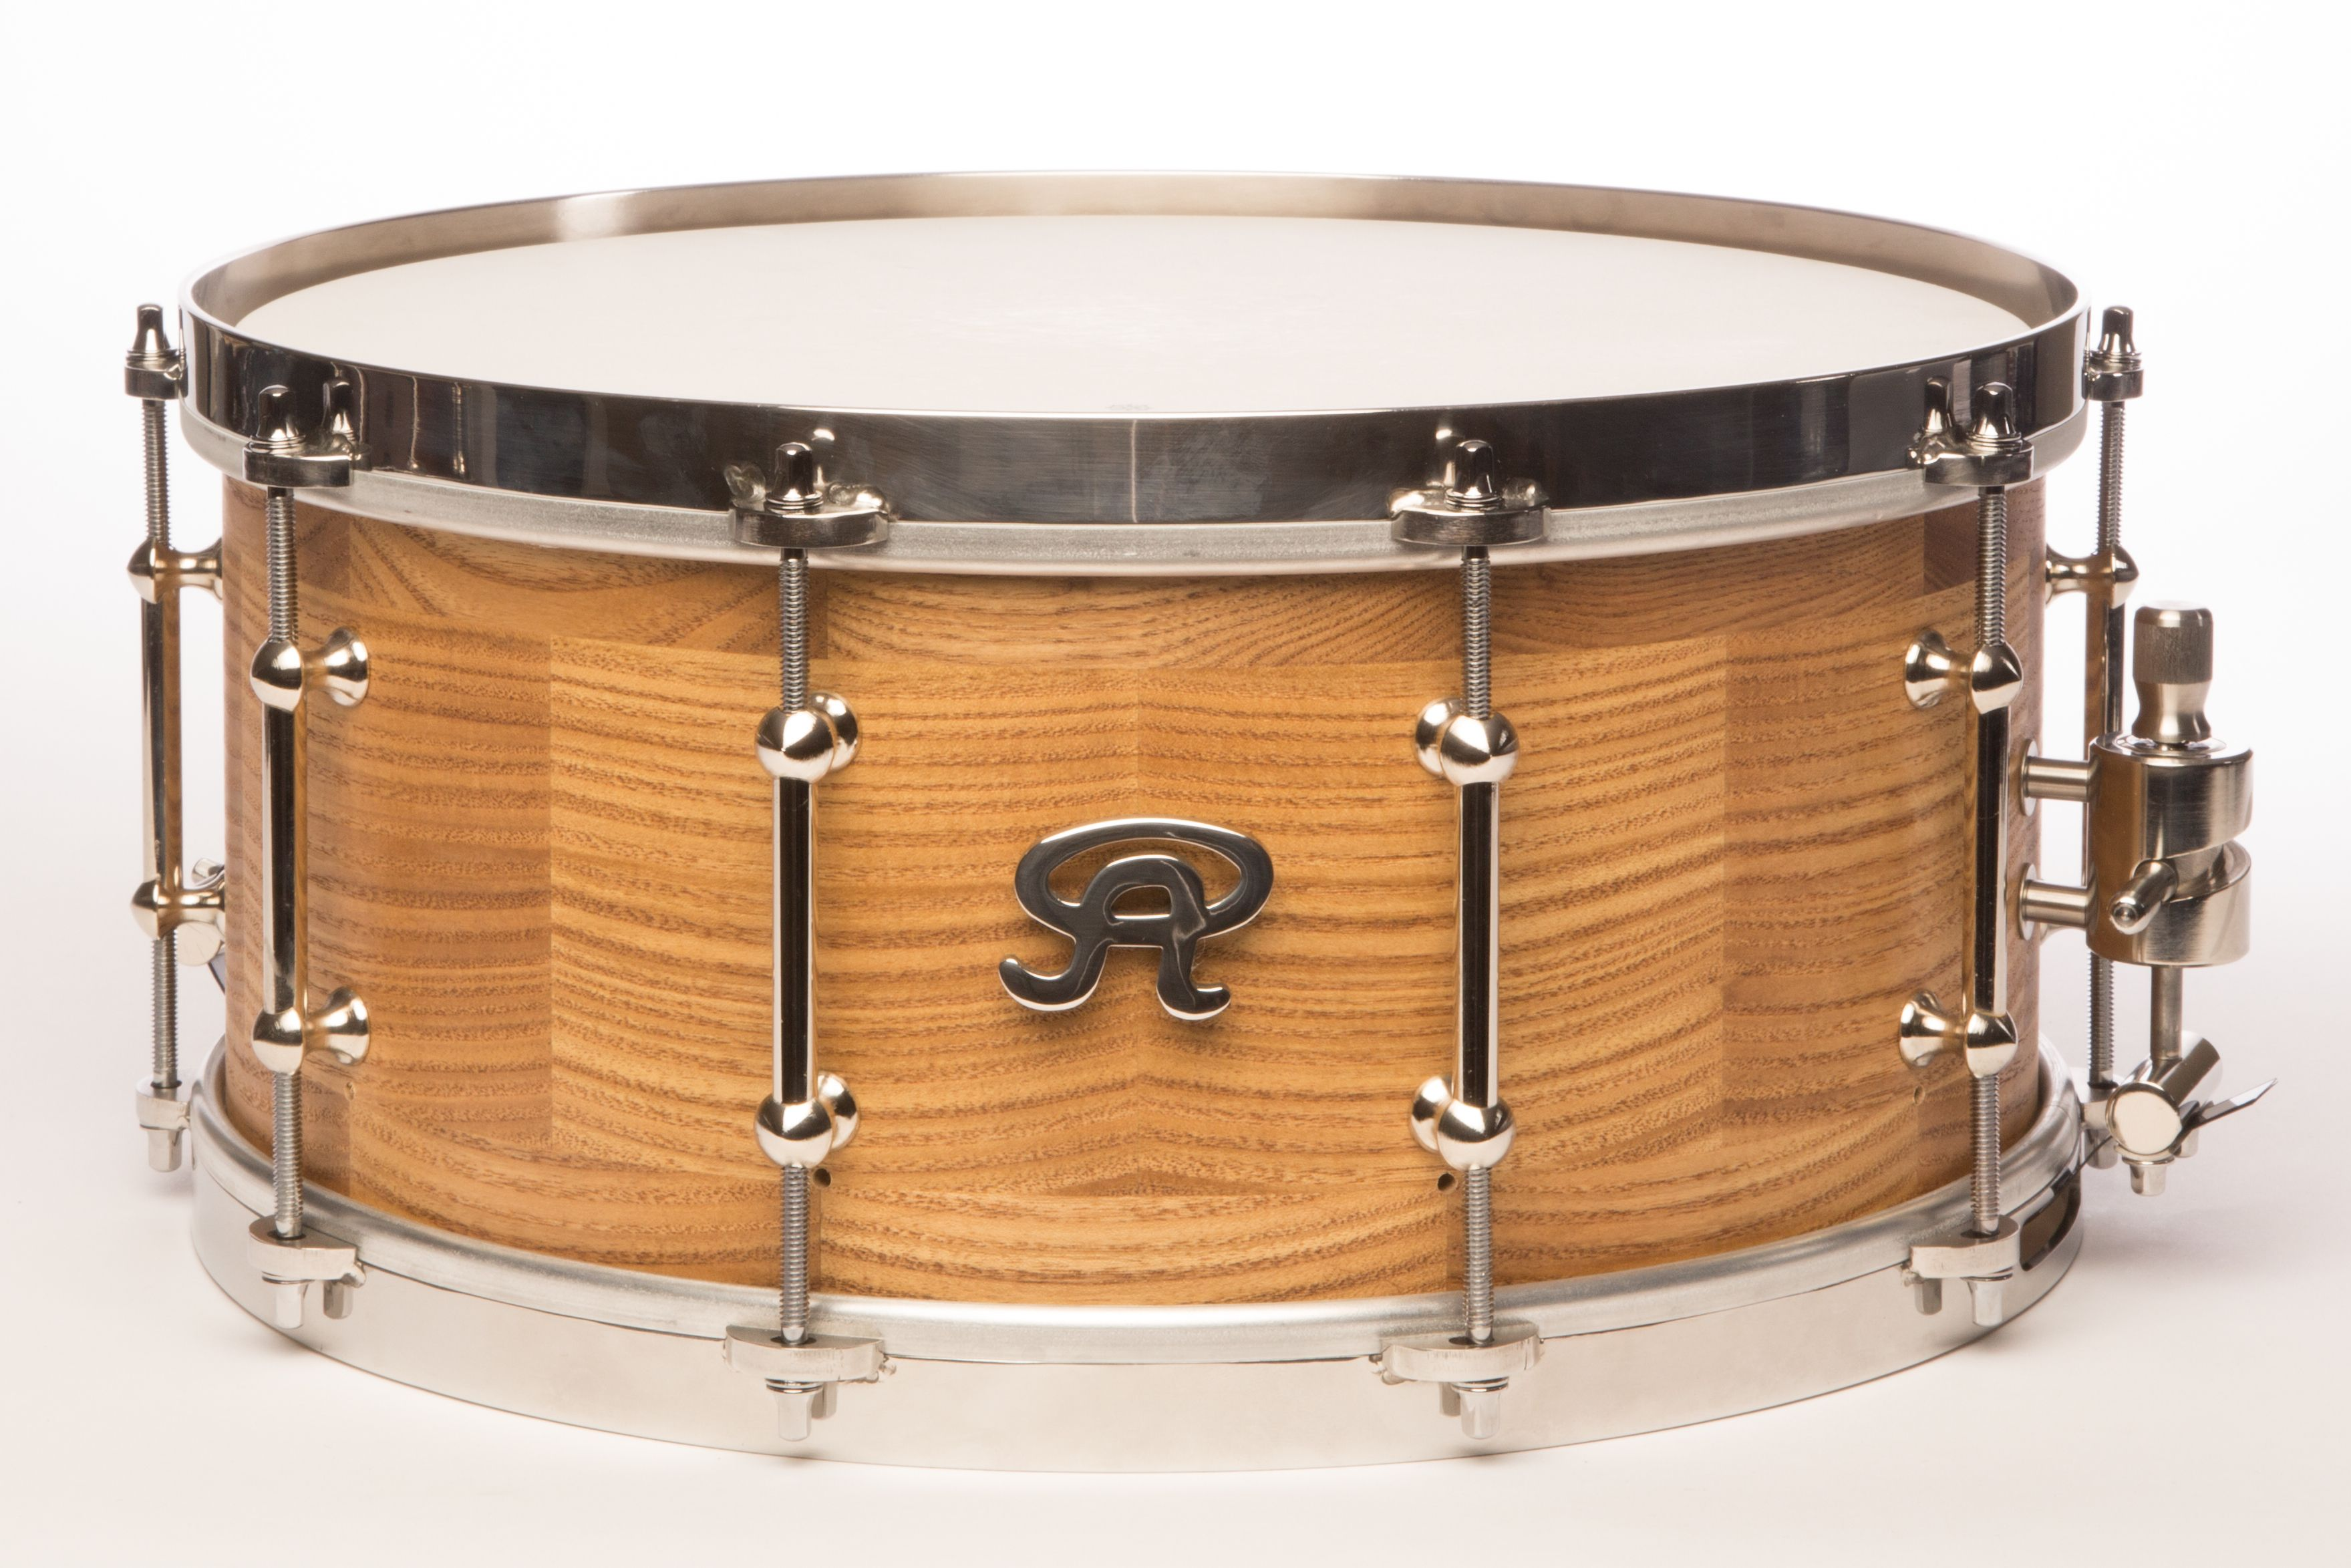 Angel Drums Japanese Acacia Snare (Just beautiful!)